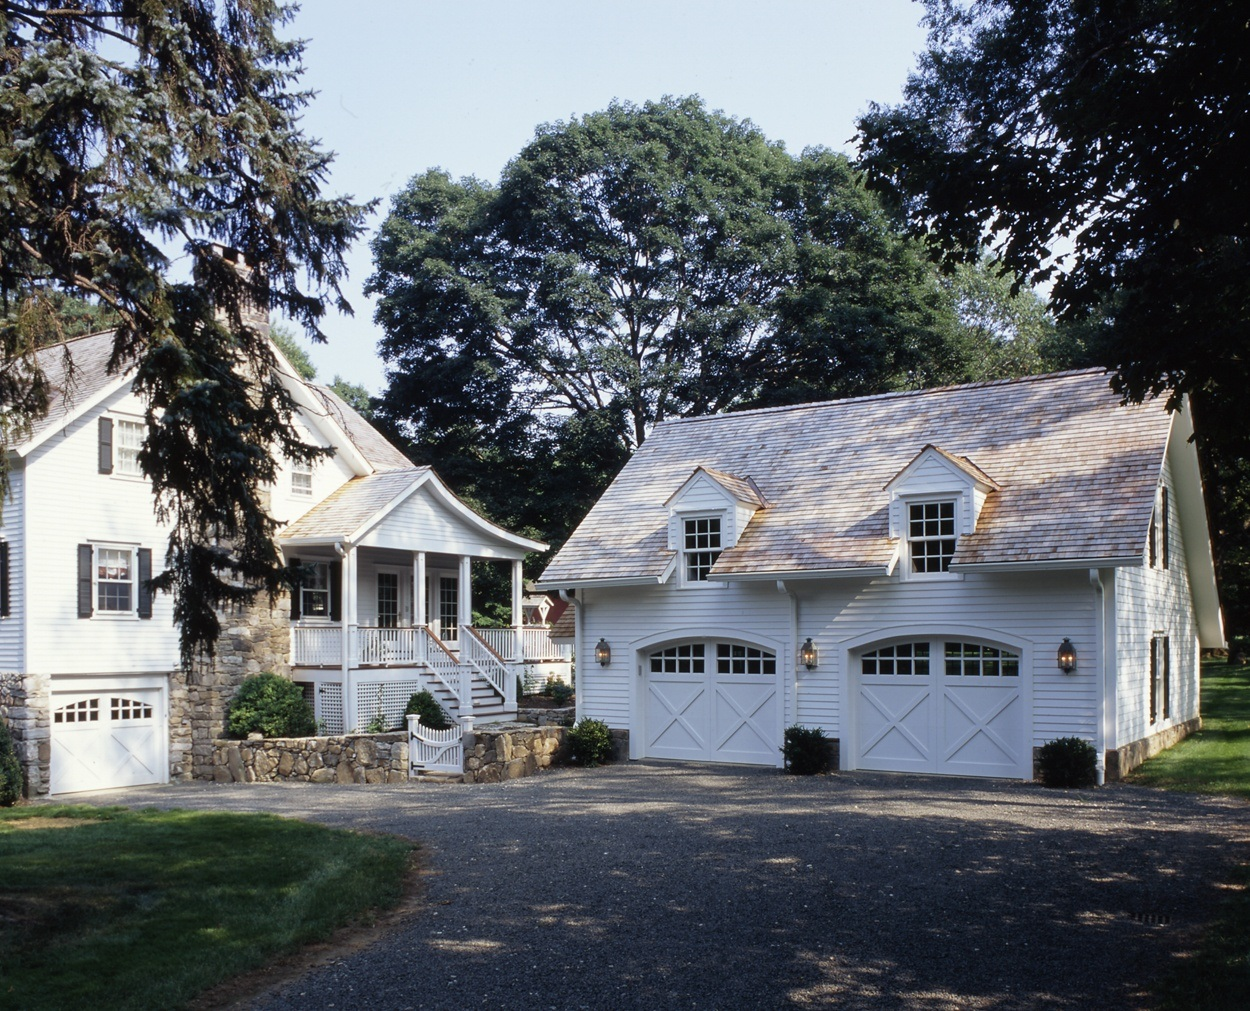 Clark Construction's carriage house style garage coordinates well with the 1850s home.